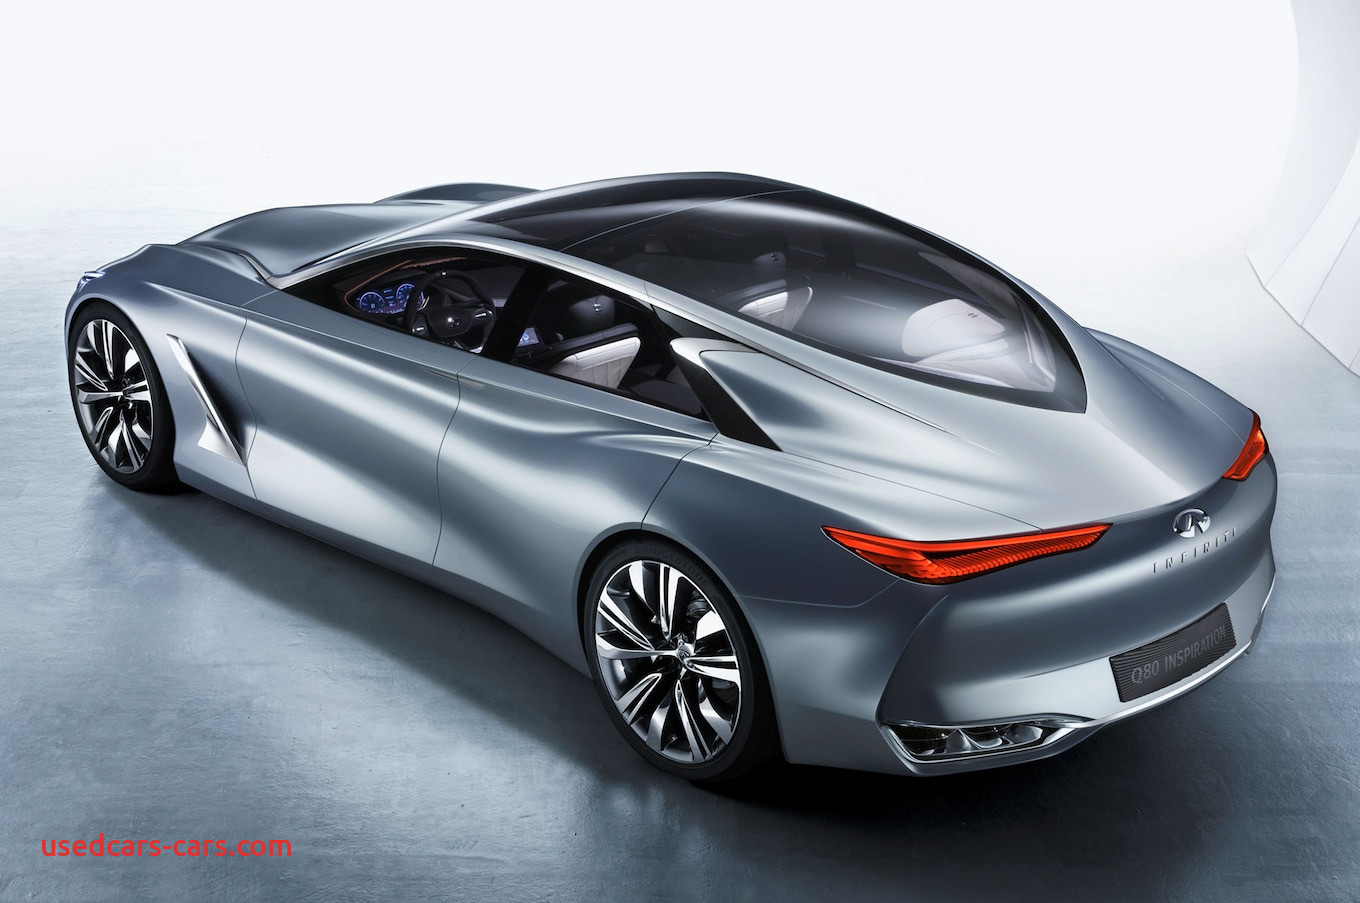 infiniti q80 inspiration concept first look